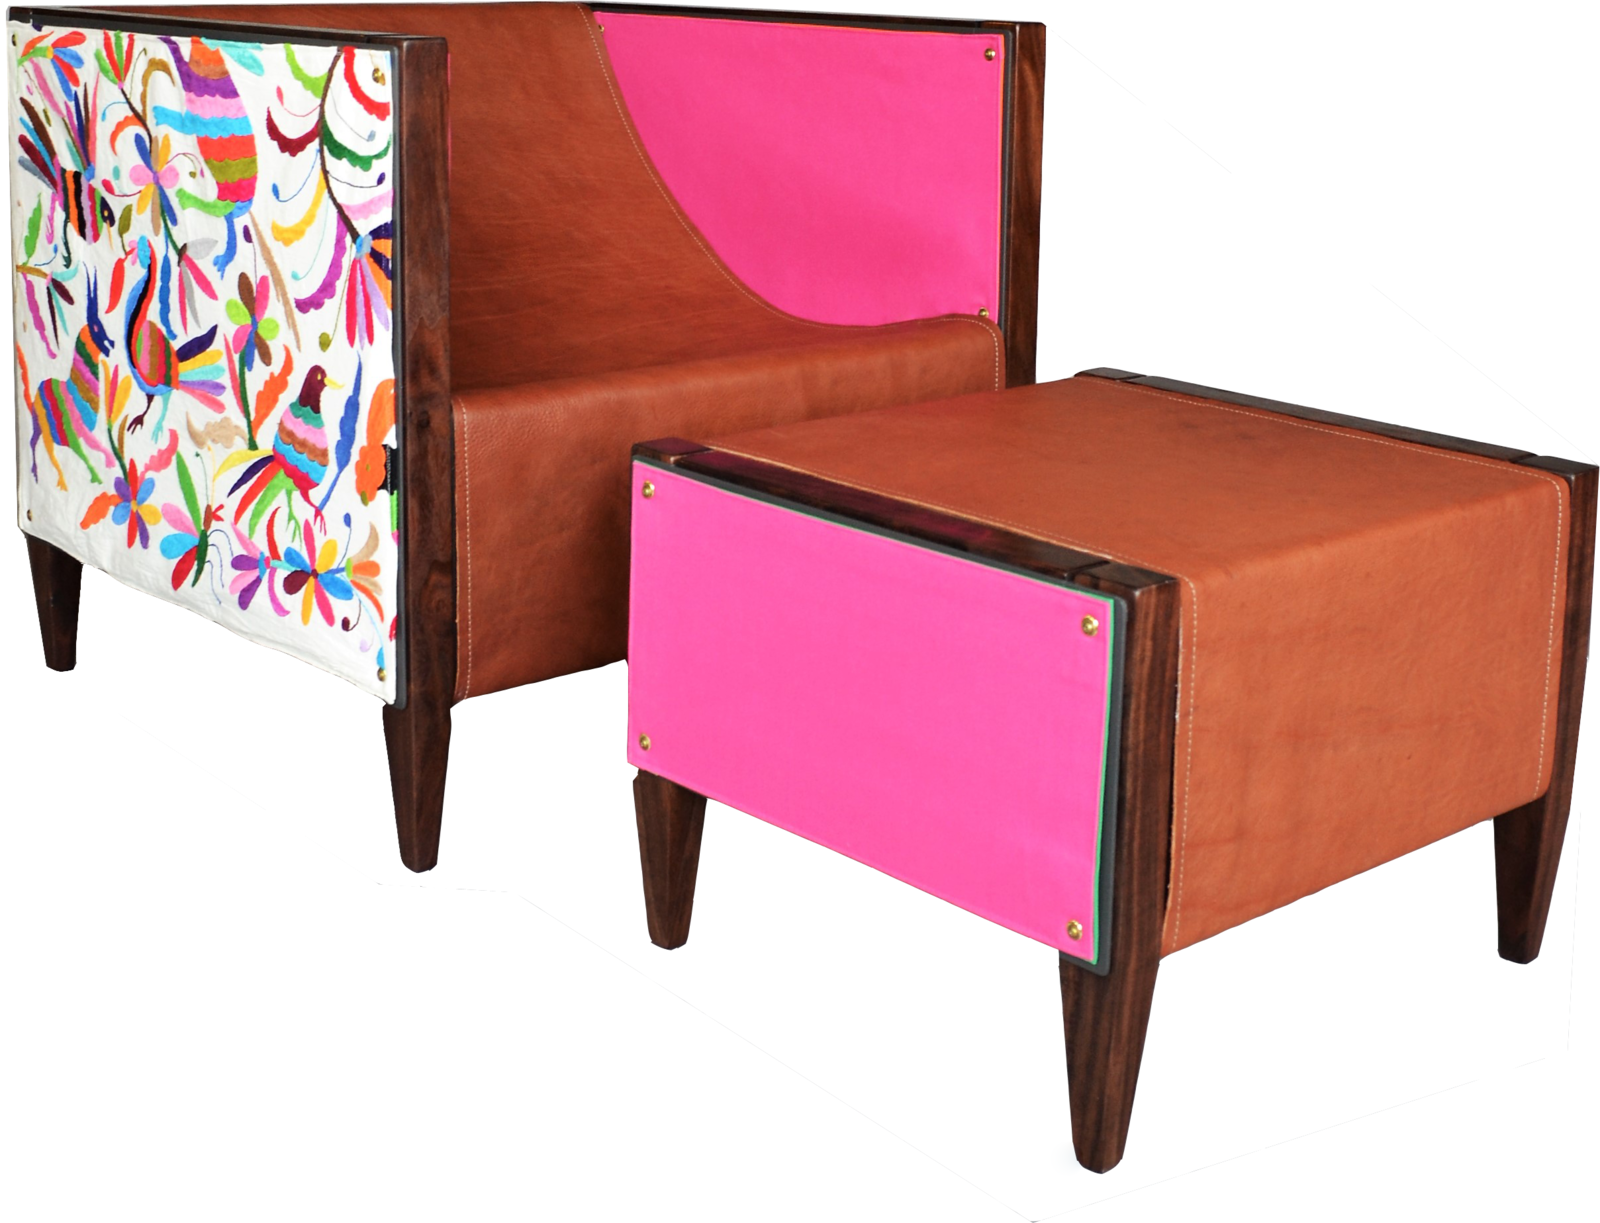 The Camp Club Chair and Ottoman by Rob Zinn is available in a Special Edition hand-embroidered Otomi fabric and vegetable-tanned leathers. Aluminum and wood frame can even be made for outdoor use.  www.blankblank.net  blankblank Collection